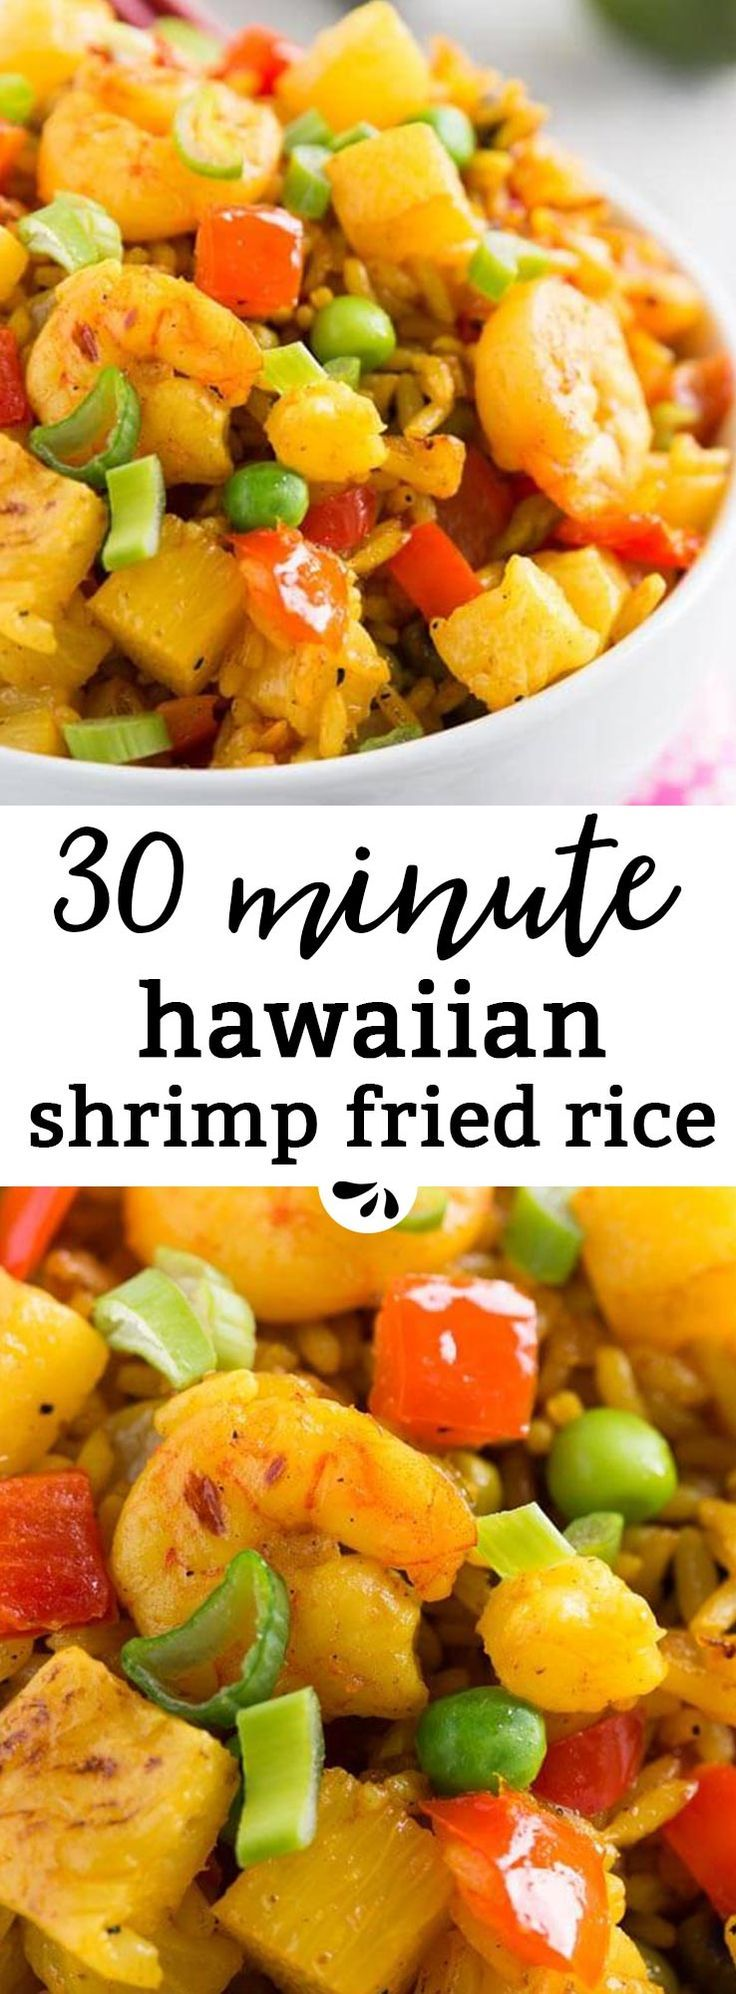 This Hawaiian shrimp fried rice is an easy family dinner recipe you can have on the table in 30 minutes. If you have cooked rice on hand, it's ready even faster! Made with red pepper, pineapple, peas, shrimp and green onion, it's a delicious, kid-friendly and healthy meal for the whole family. Great for weeknights and the leftovers make for a delicious packed work lunch the next day!